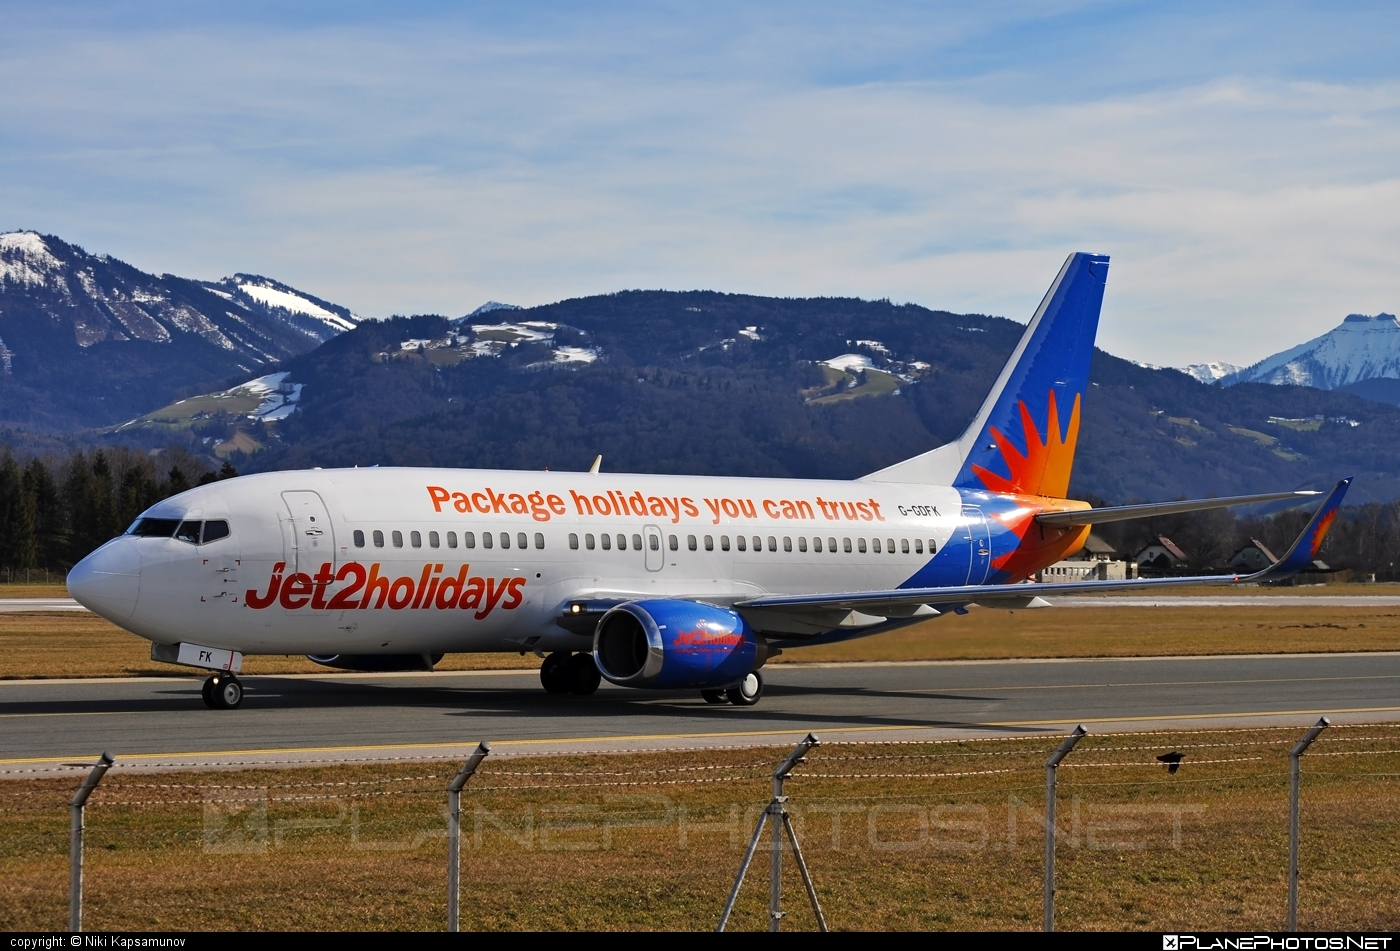 Boeing 737-300 - G-GDFK operated by Jet2holidays #b737 #boeing #boeing737 #jet2holidays